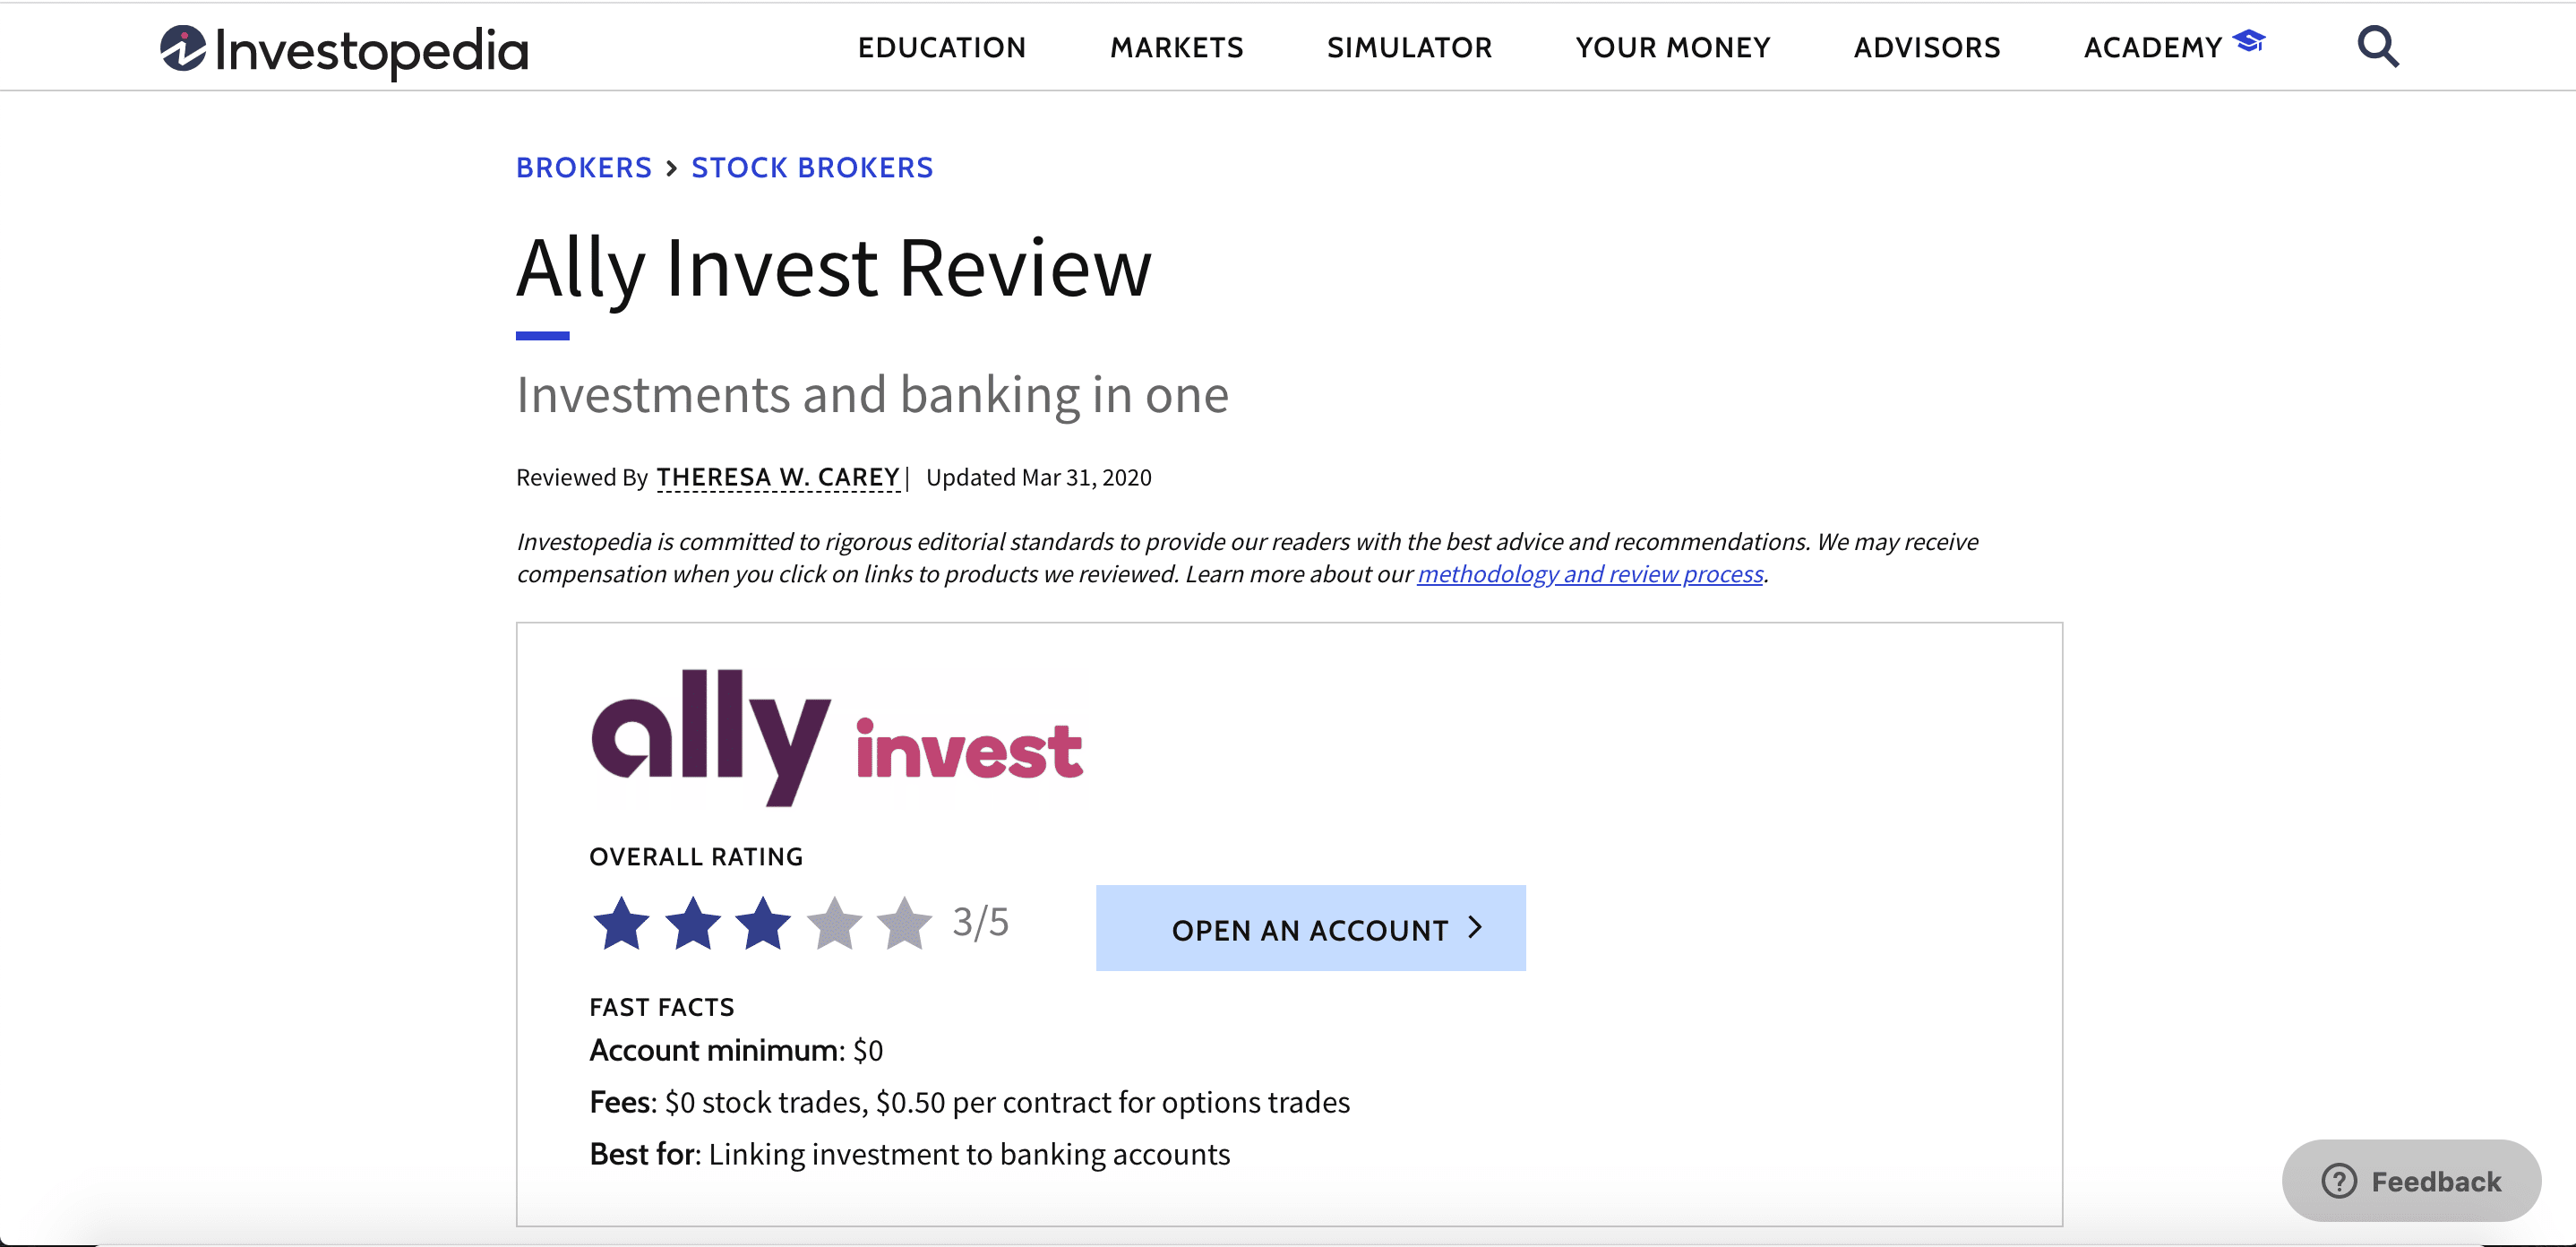 Example of a broker review